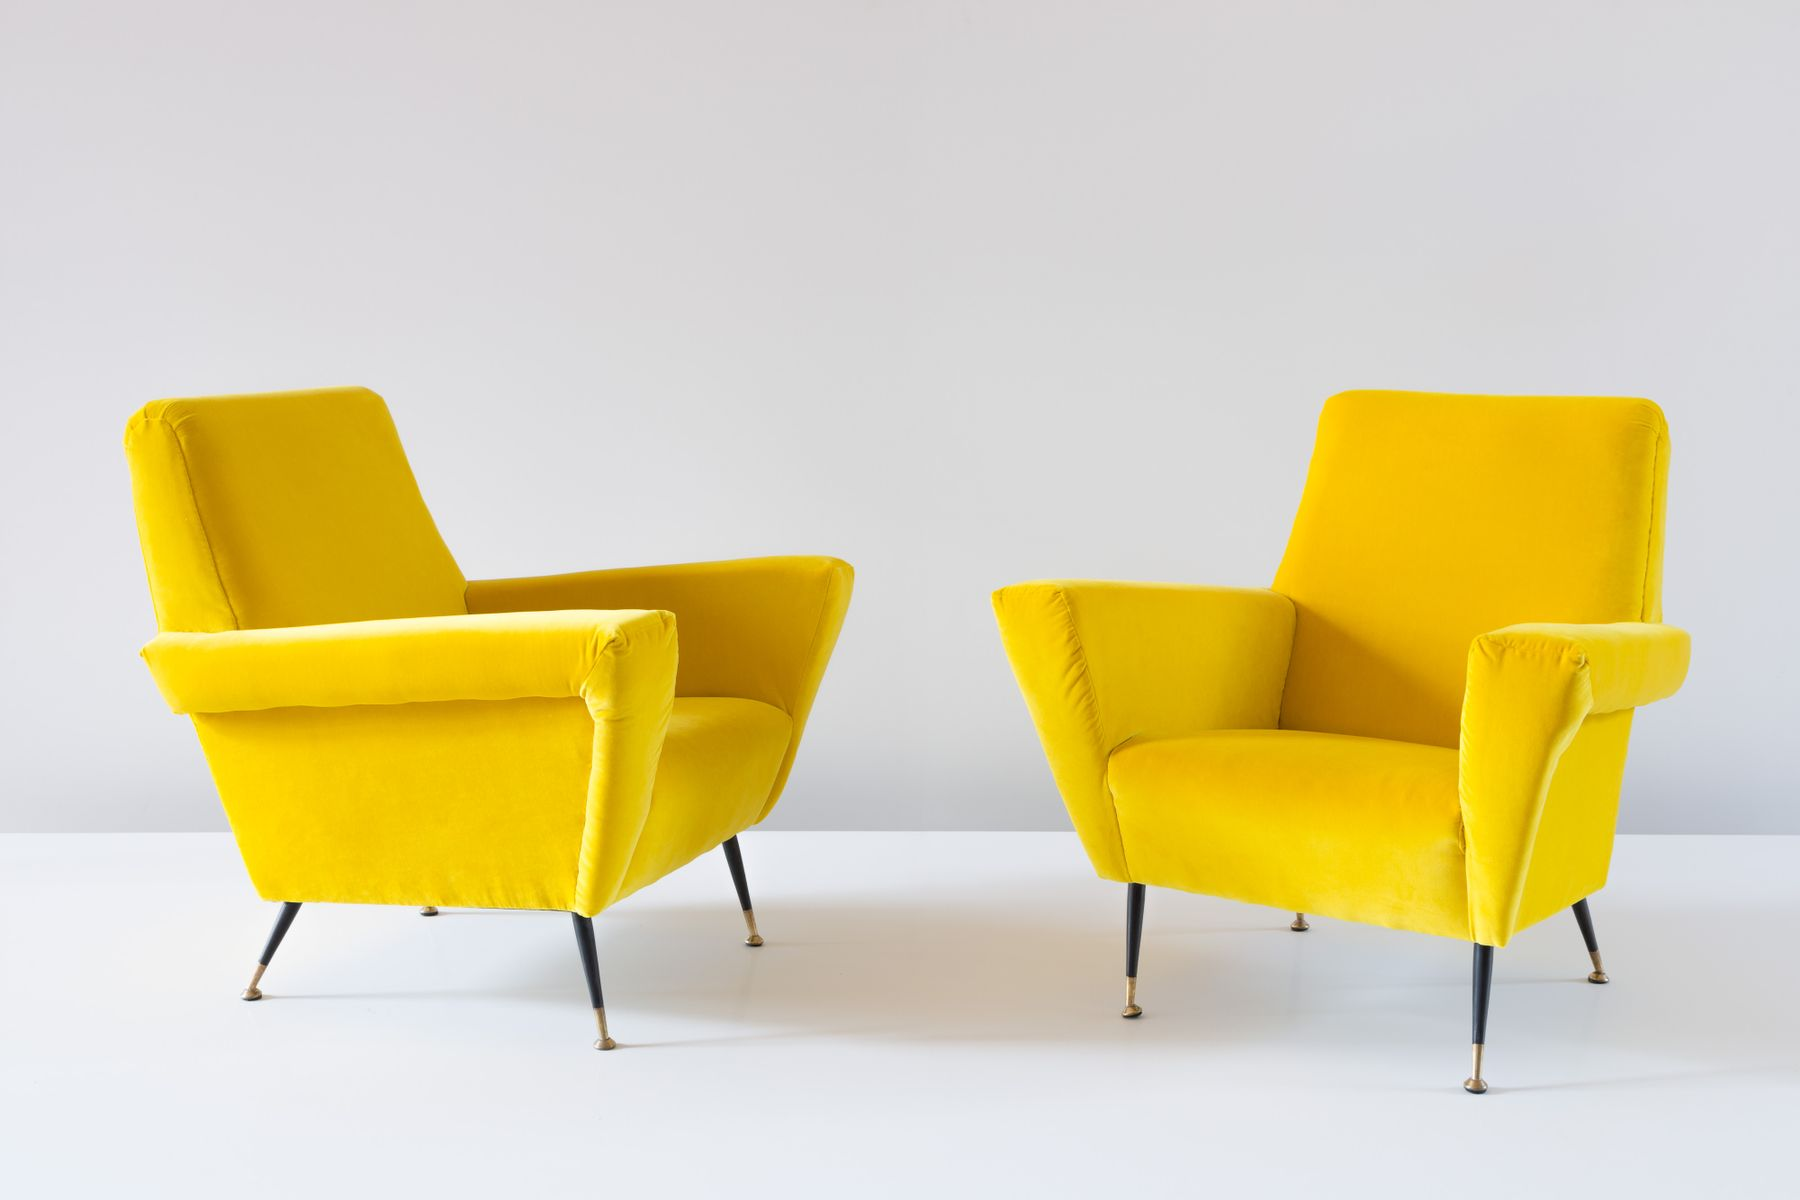 vintage italian yellow velvet armchairs 1950s set of 2. Black Bedroom Furniture Sets. Home Design Ideas